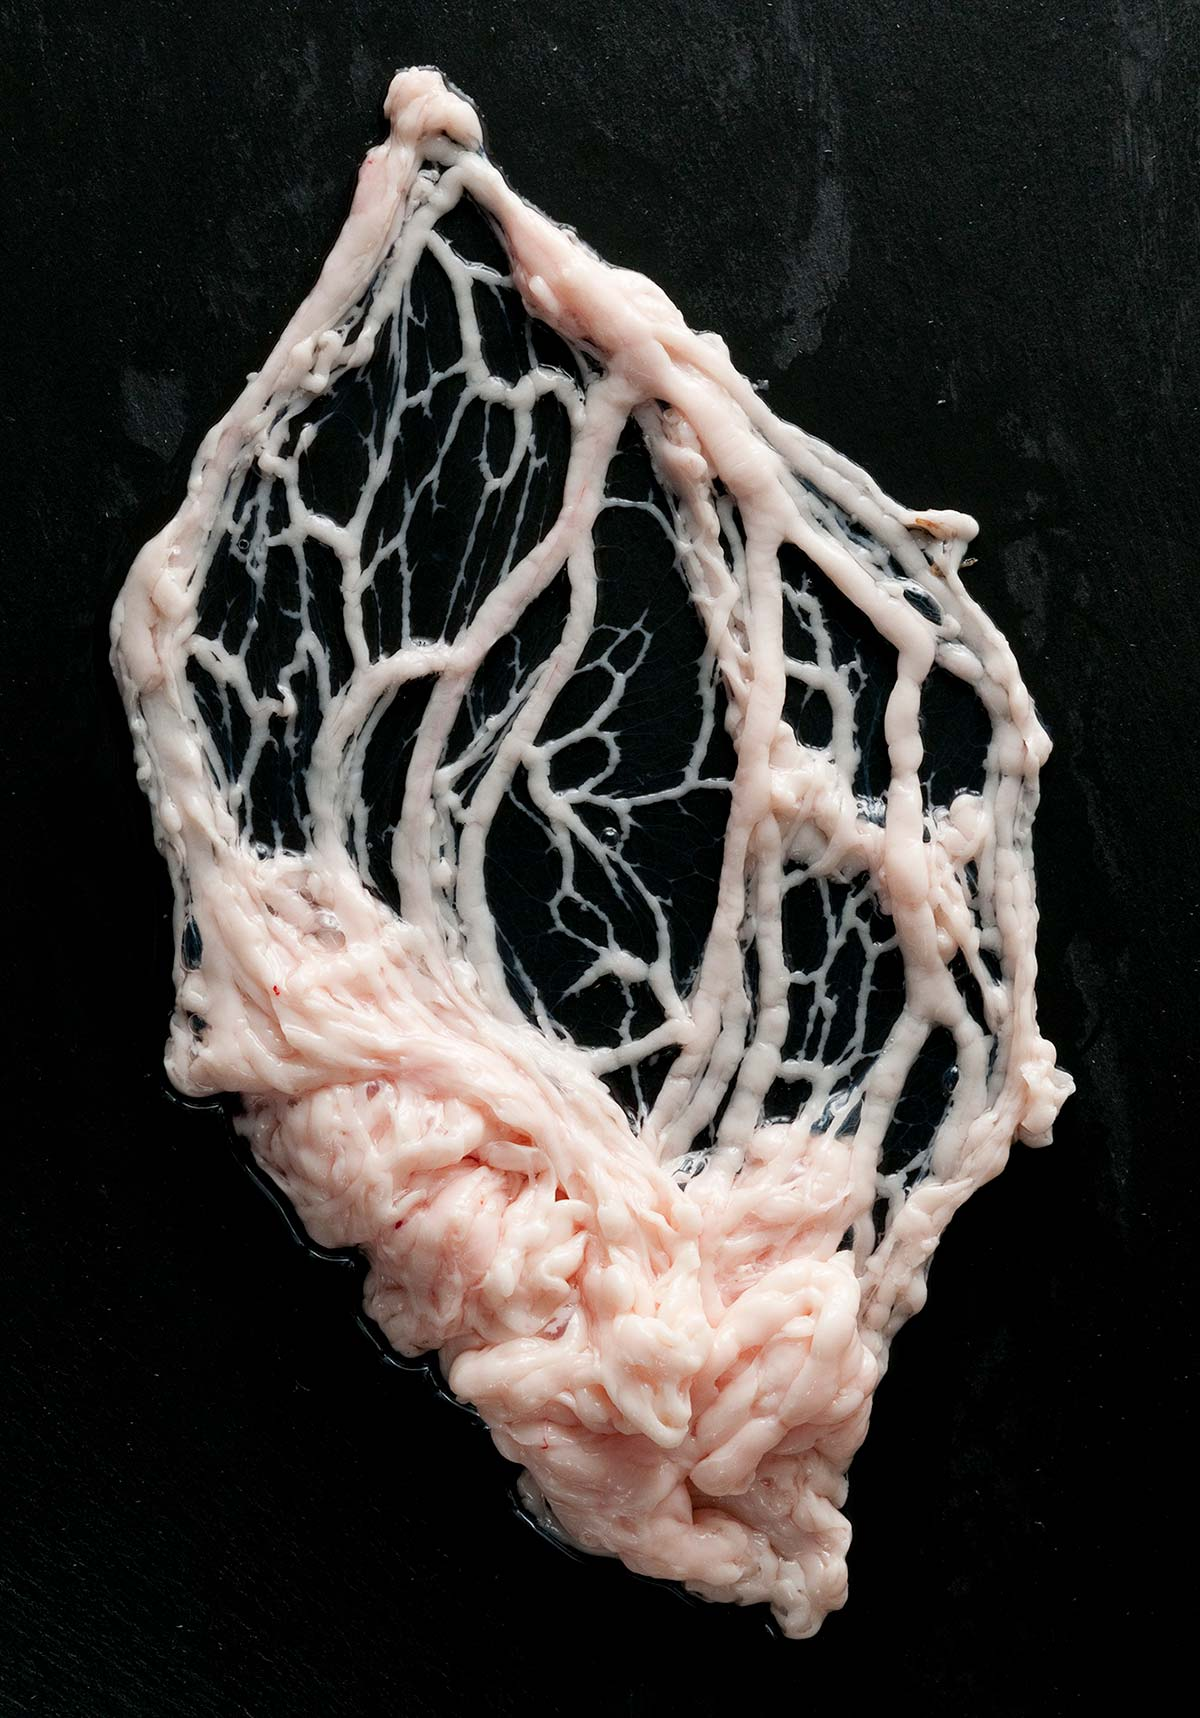 Artistic image of caul fat on a black background